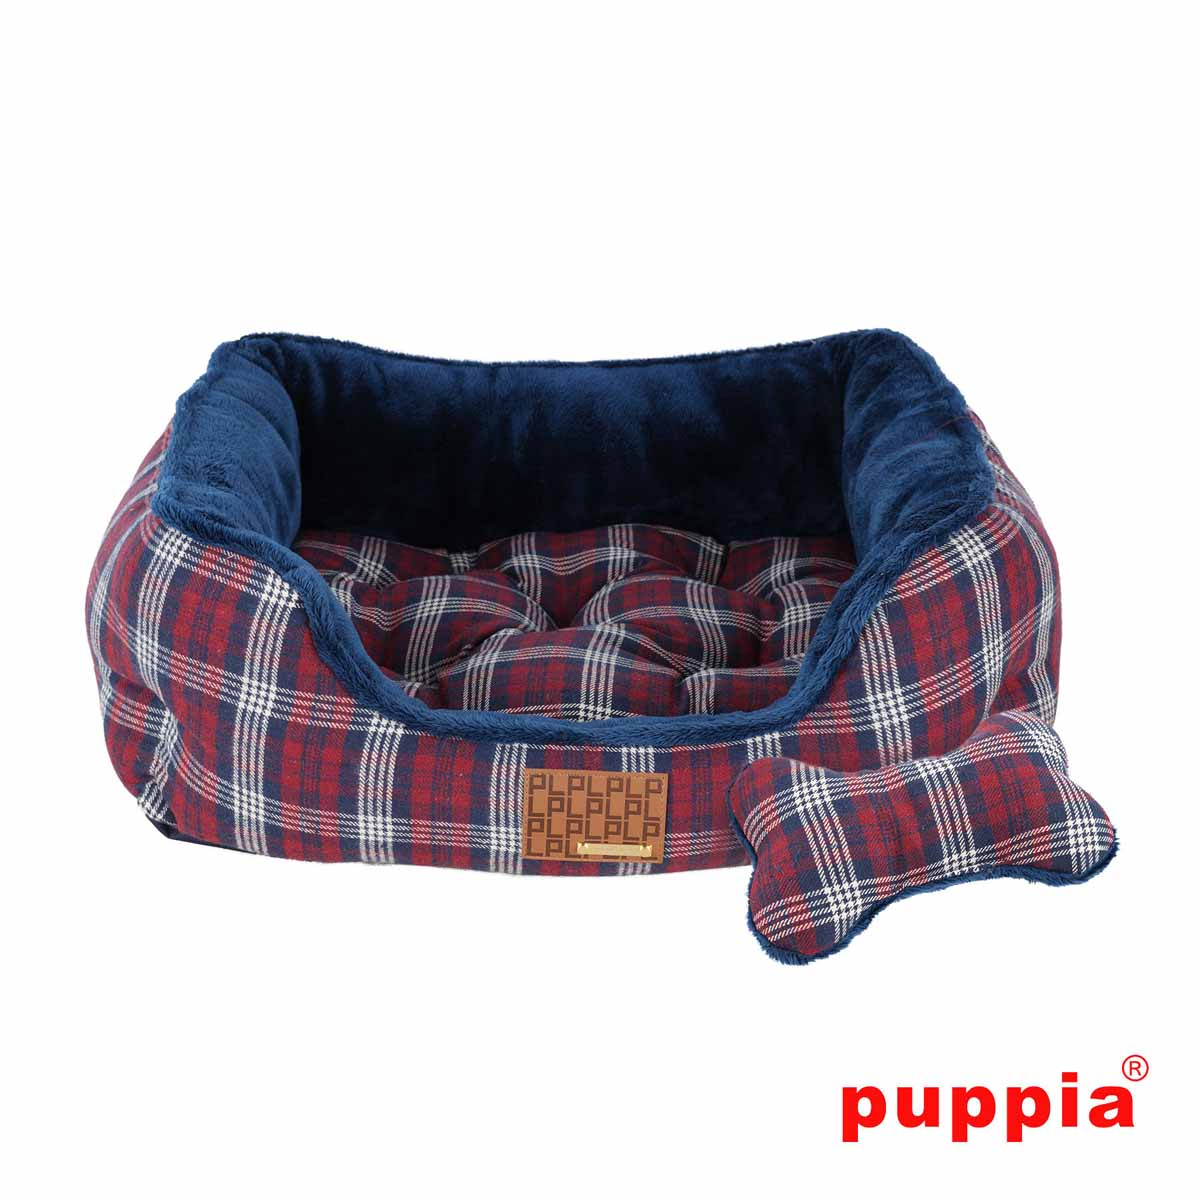 Theodore House Dog Bed by Puppia - Navy